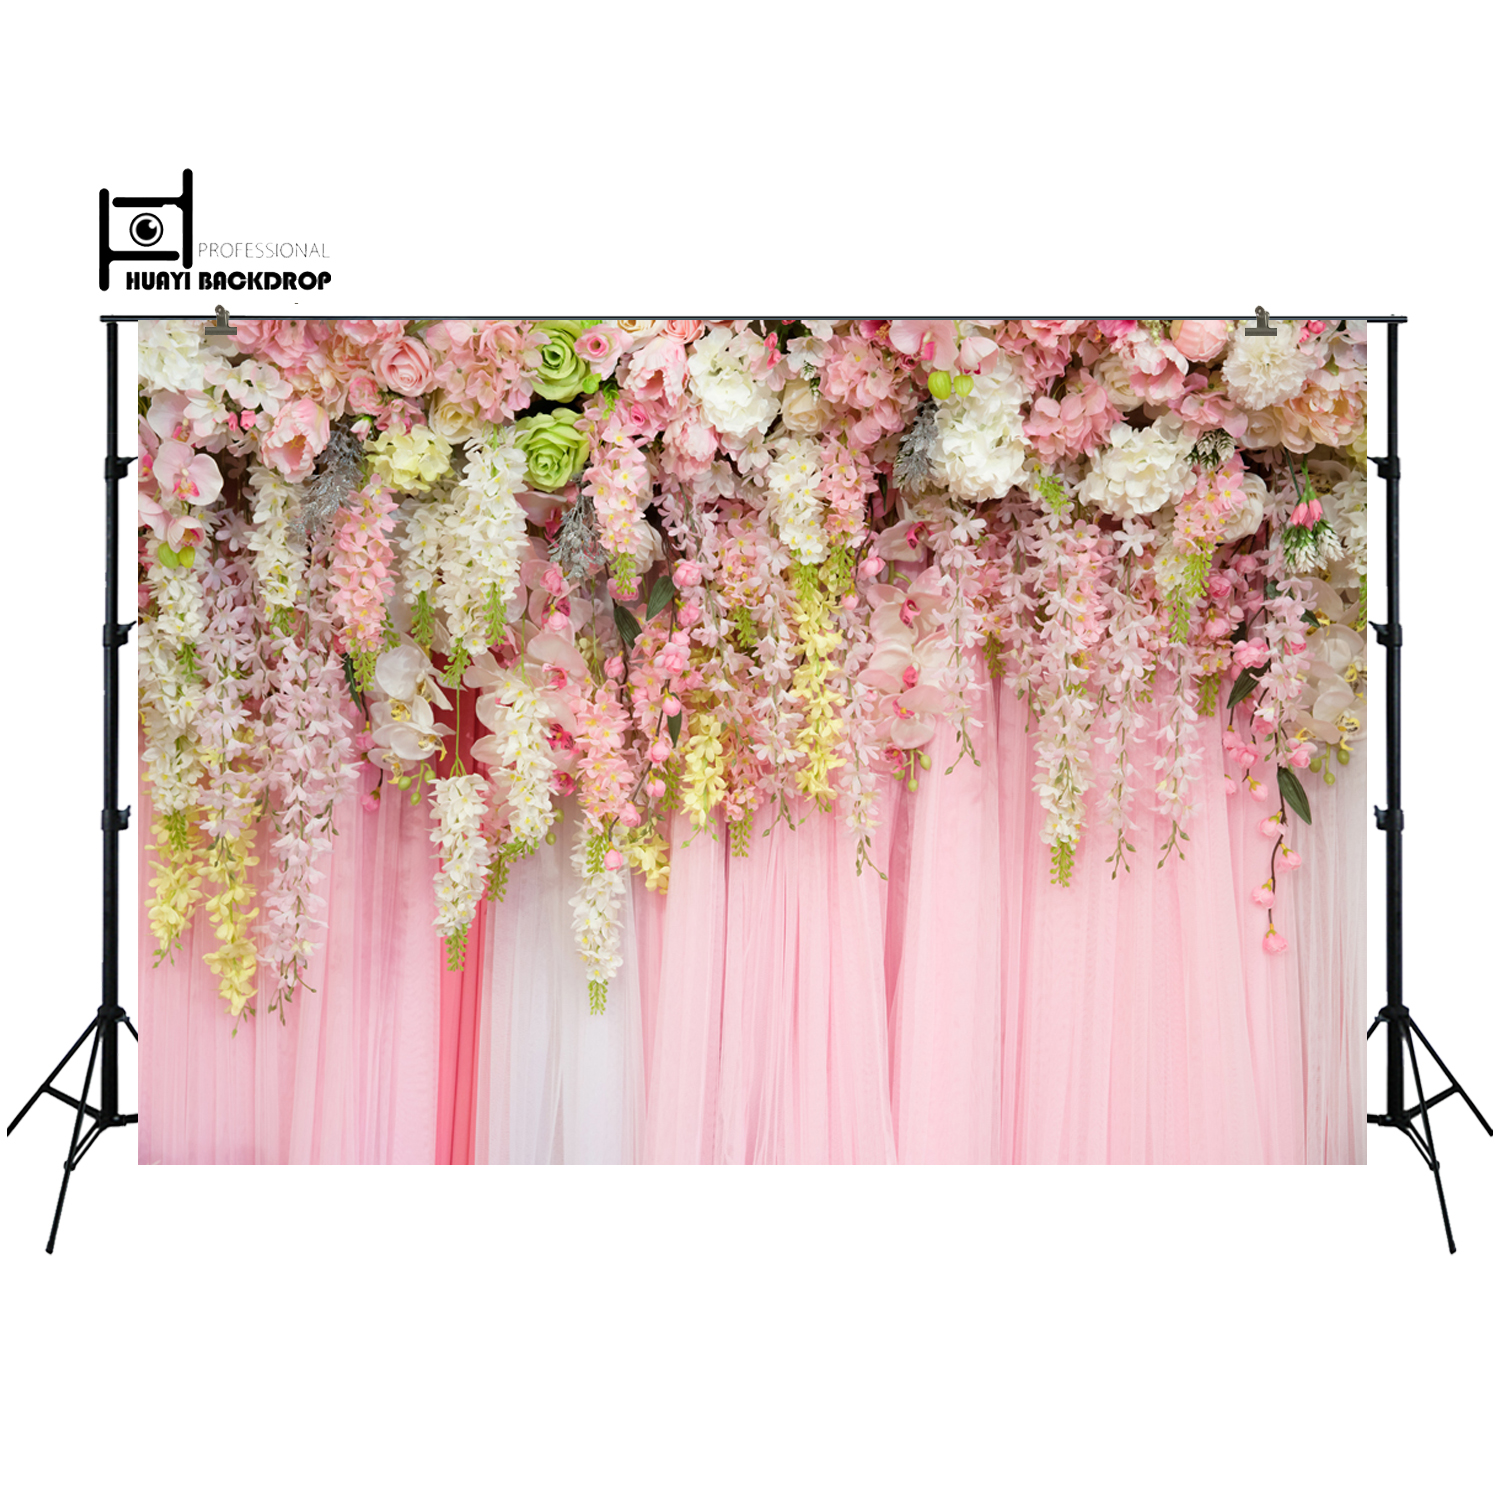 Wedding backdrop flowers wall photography background,birthday party baby shower decor banner floral photo backdrop props XT-6740 стоимость